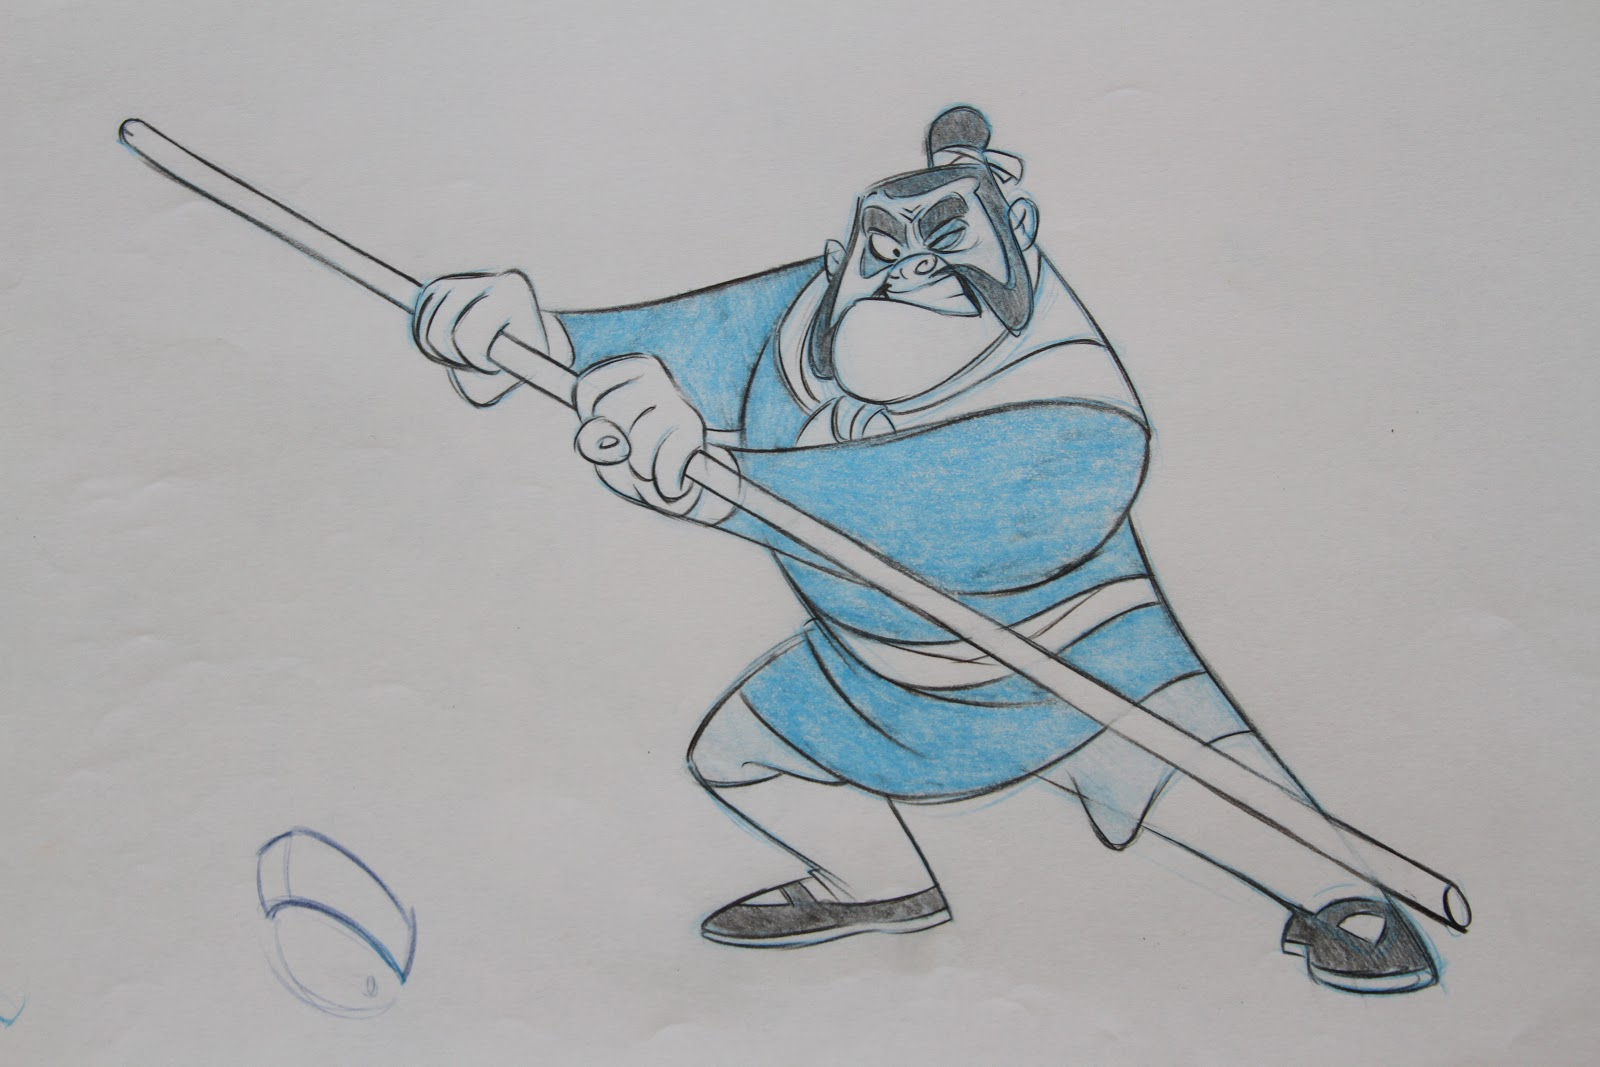 Character Design With Aaron Blaise : Here are a few old mulan designs i found the art of